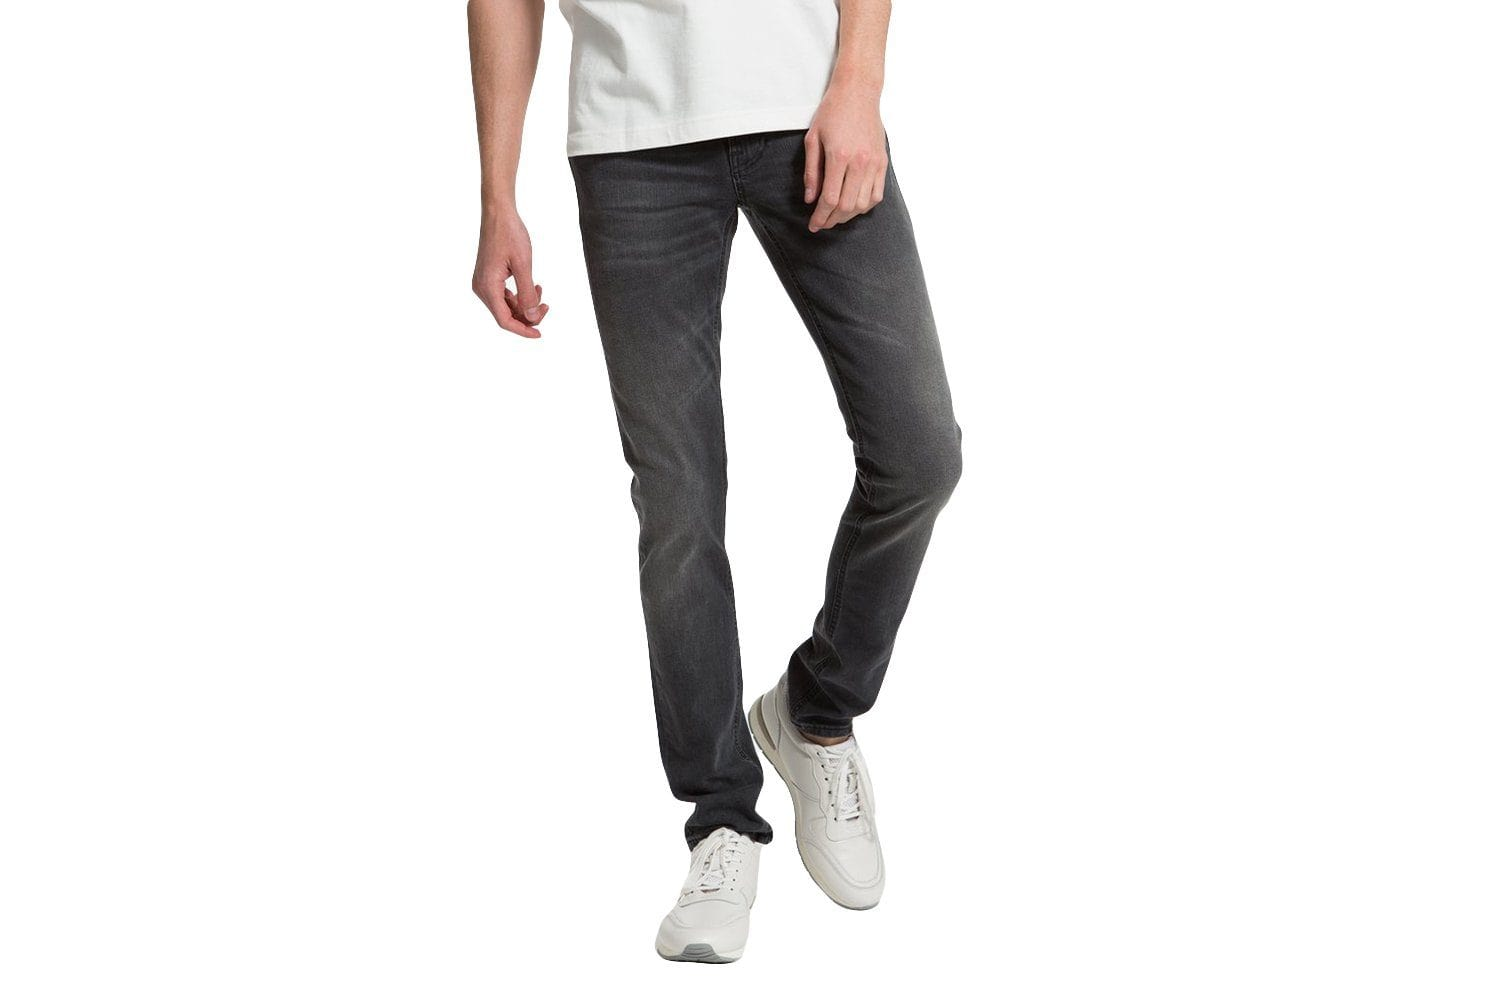 LEAN DEAN MONO GREY-112778 MENS SOFTGOODS NUDIE JEANS MONO GREY 30/32